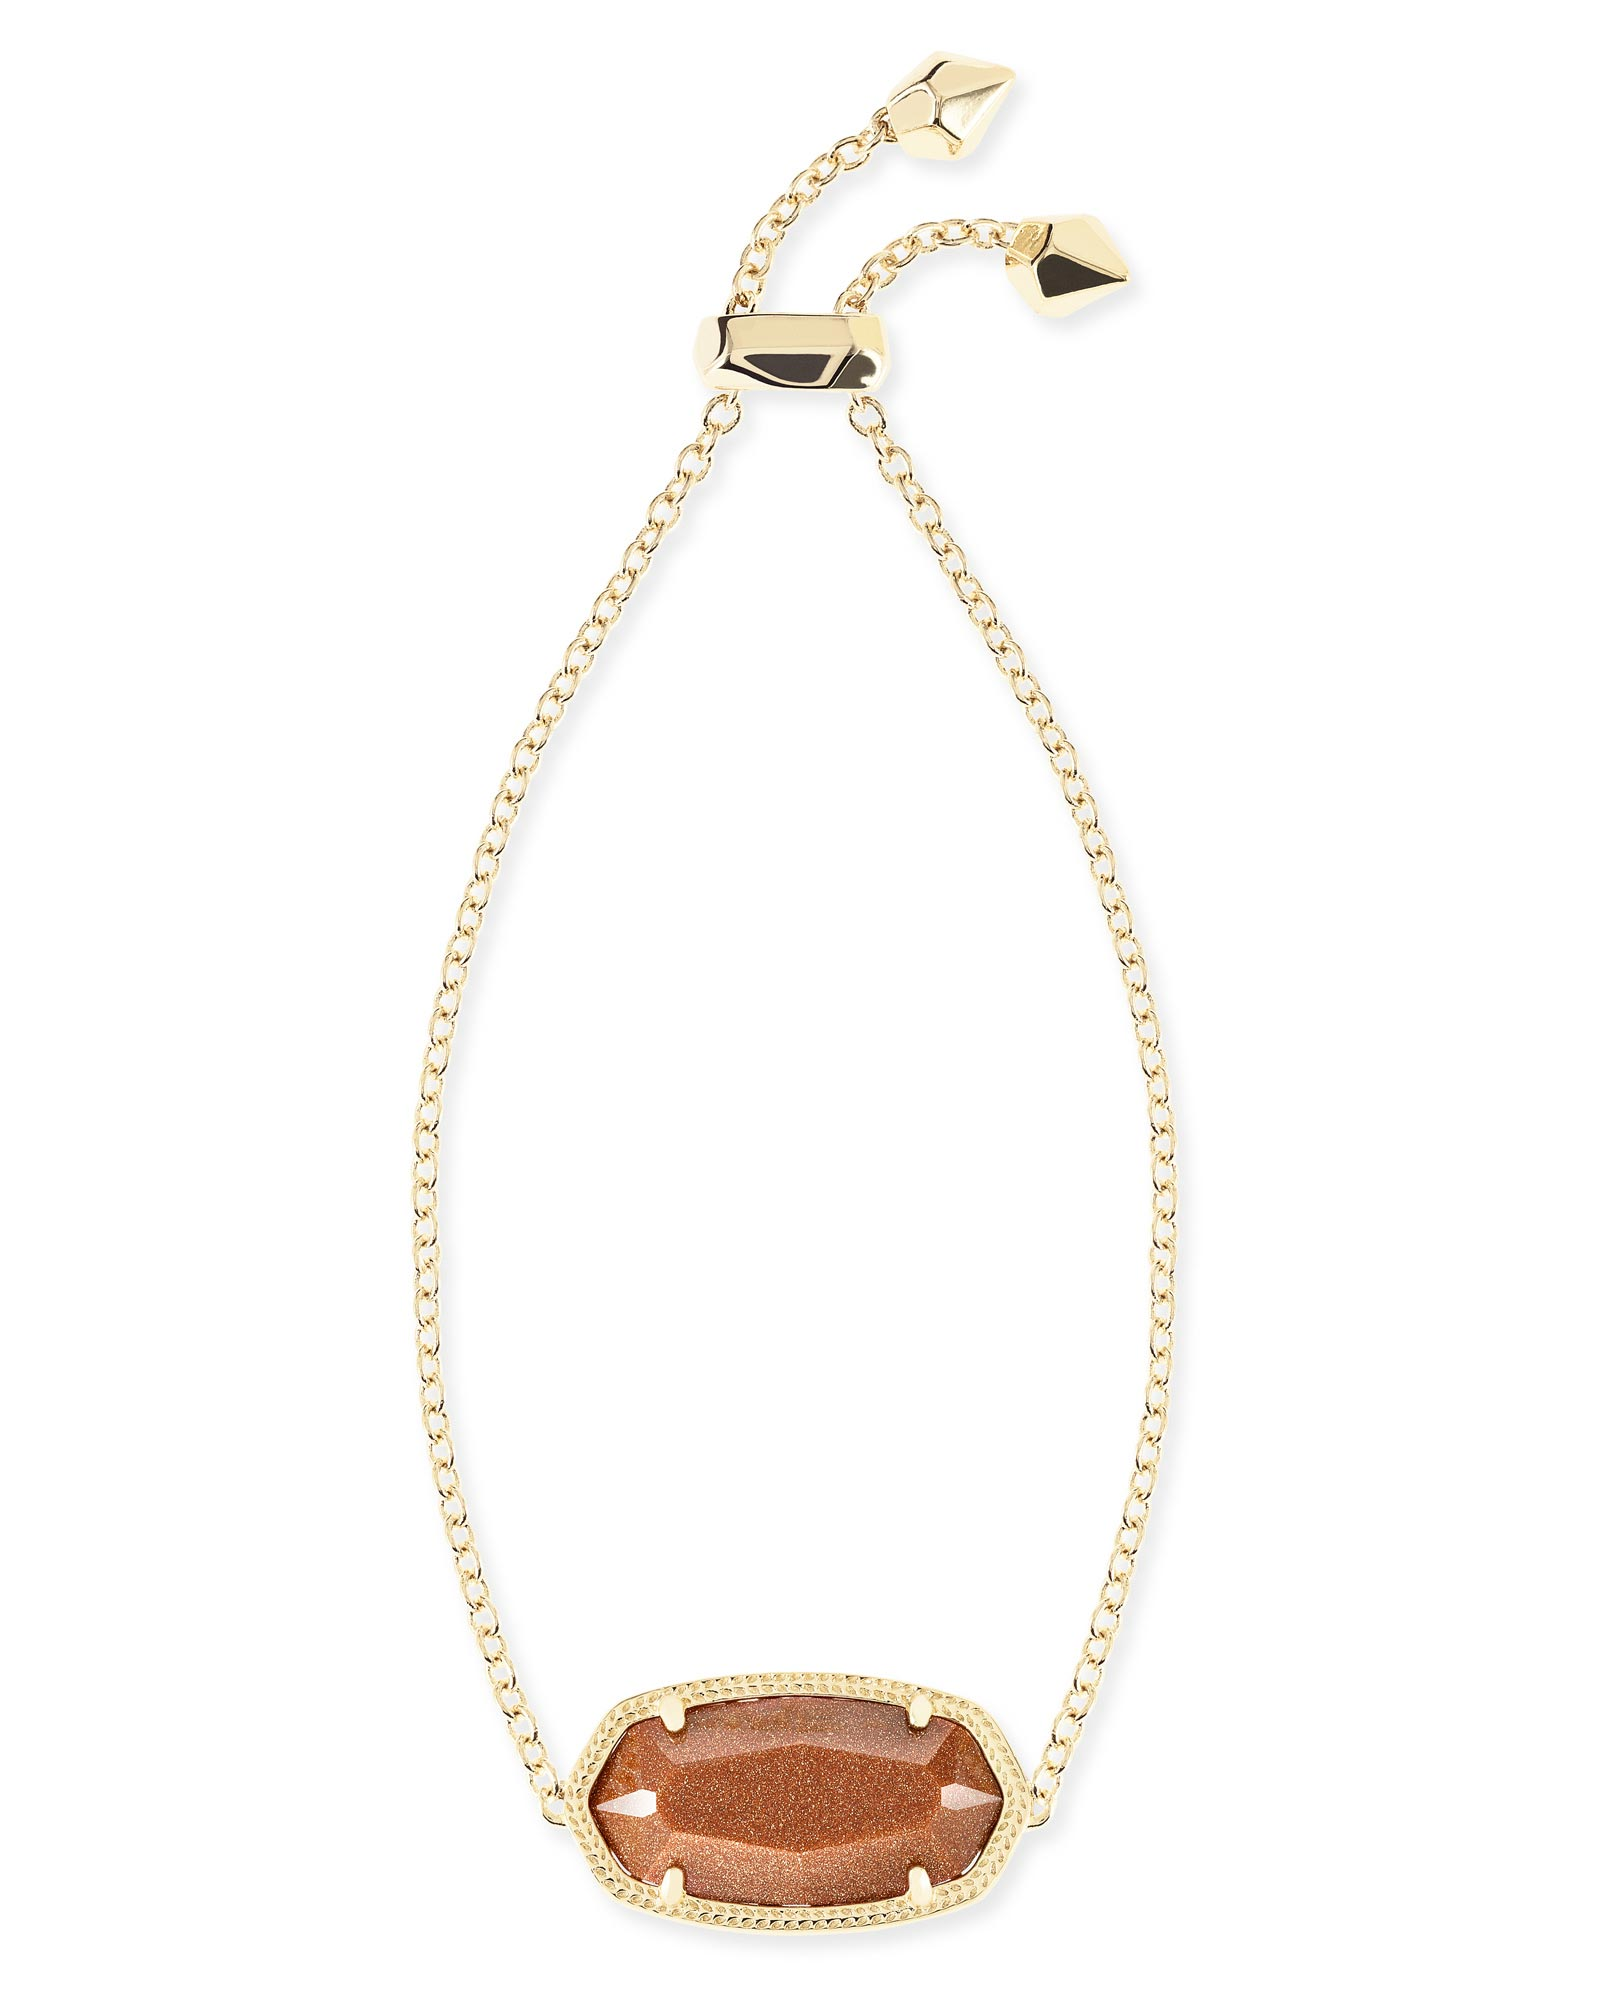 Daisy Adjustable Chain Bracelet in Goldstone